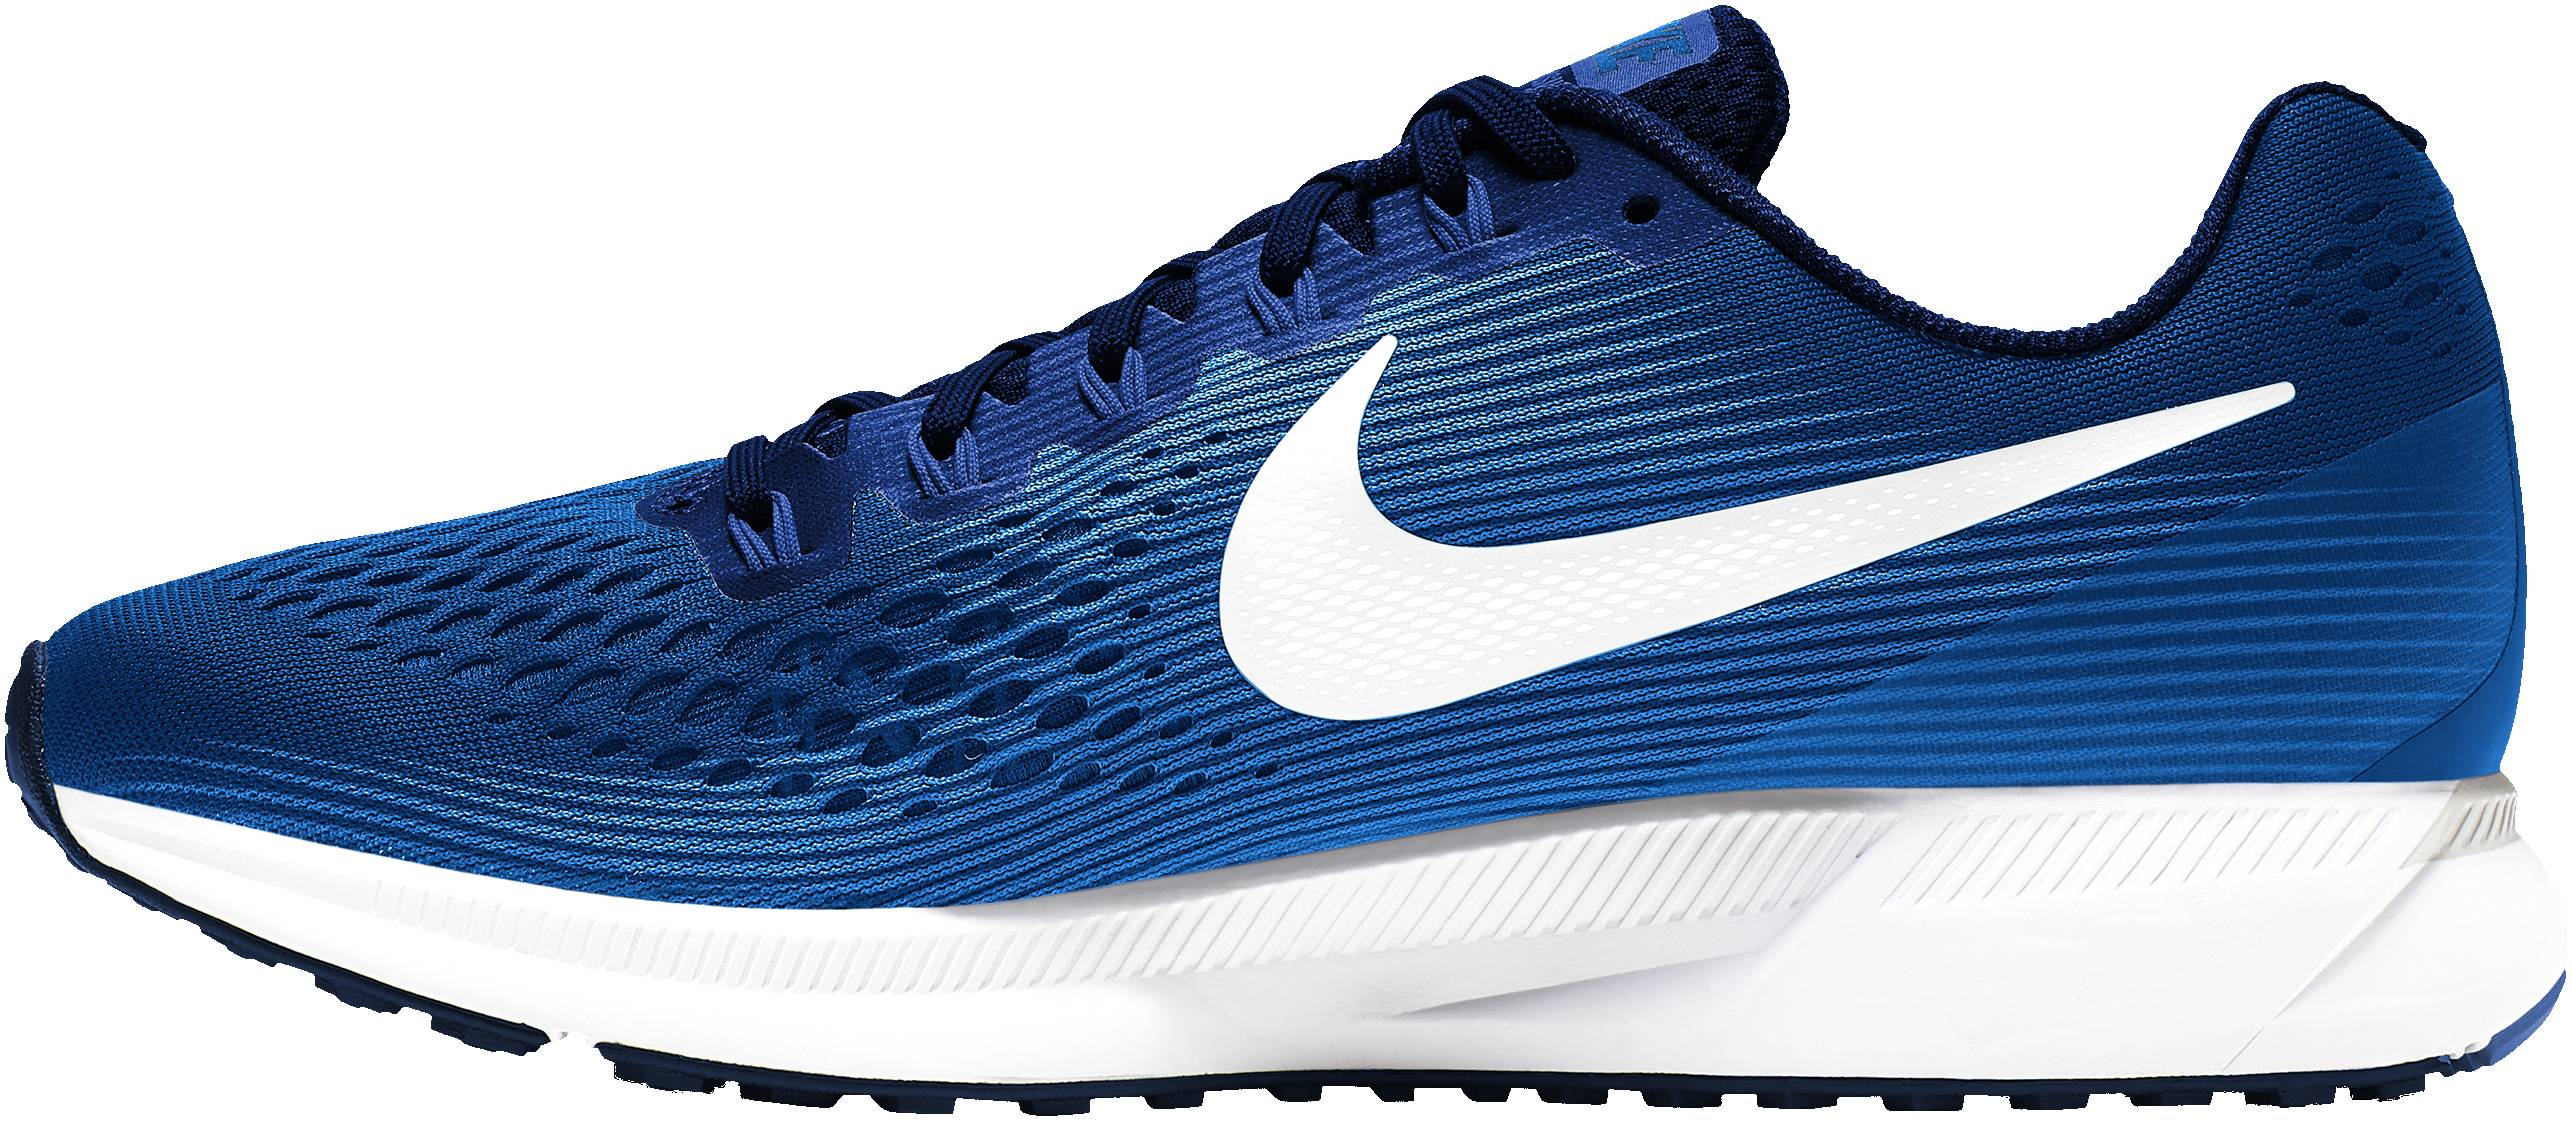 Mencionar patio artículo  Nike Air Zoom Pegasus 34 - Deals ($77), Facts, Reviews (2021) | RunRepeat